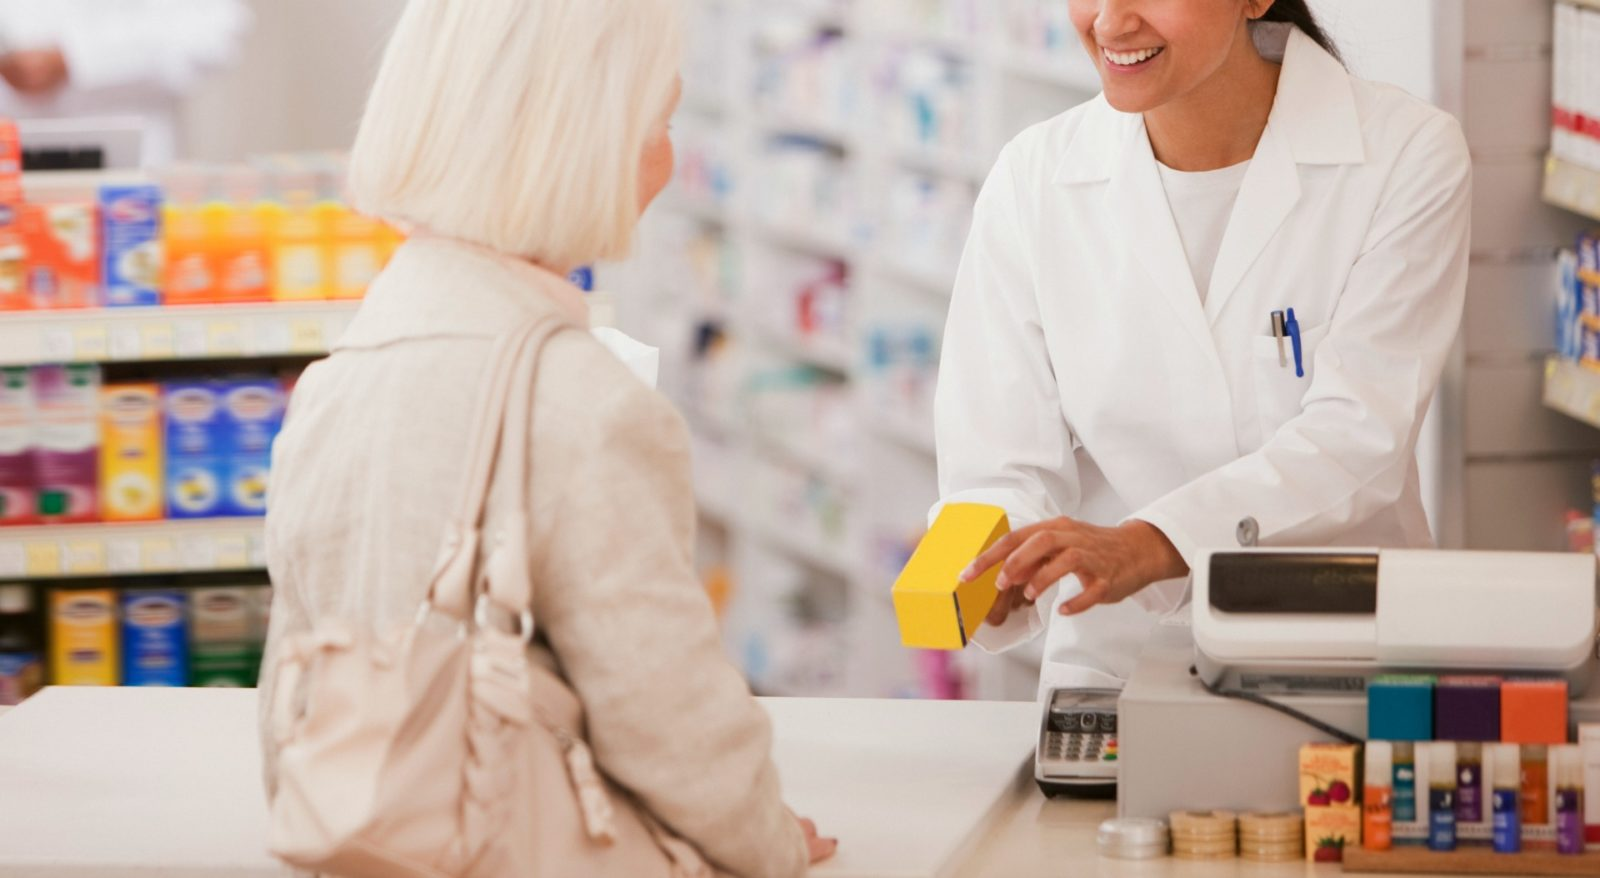 It's important to talk to a health professional before taking any new supplements.